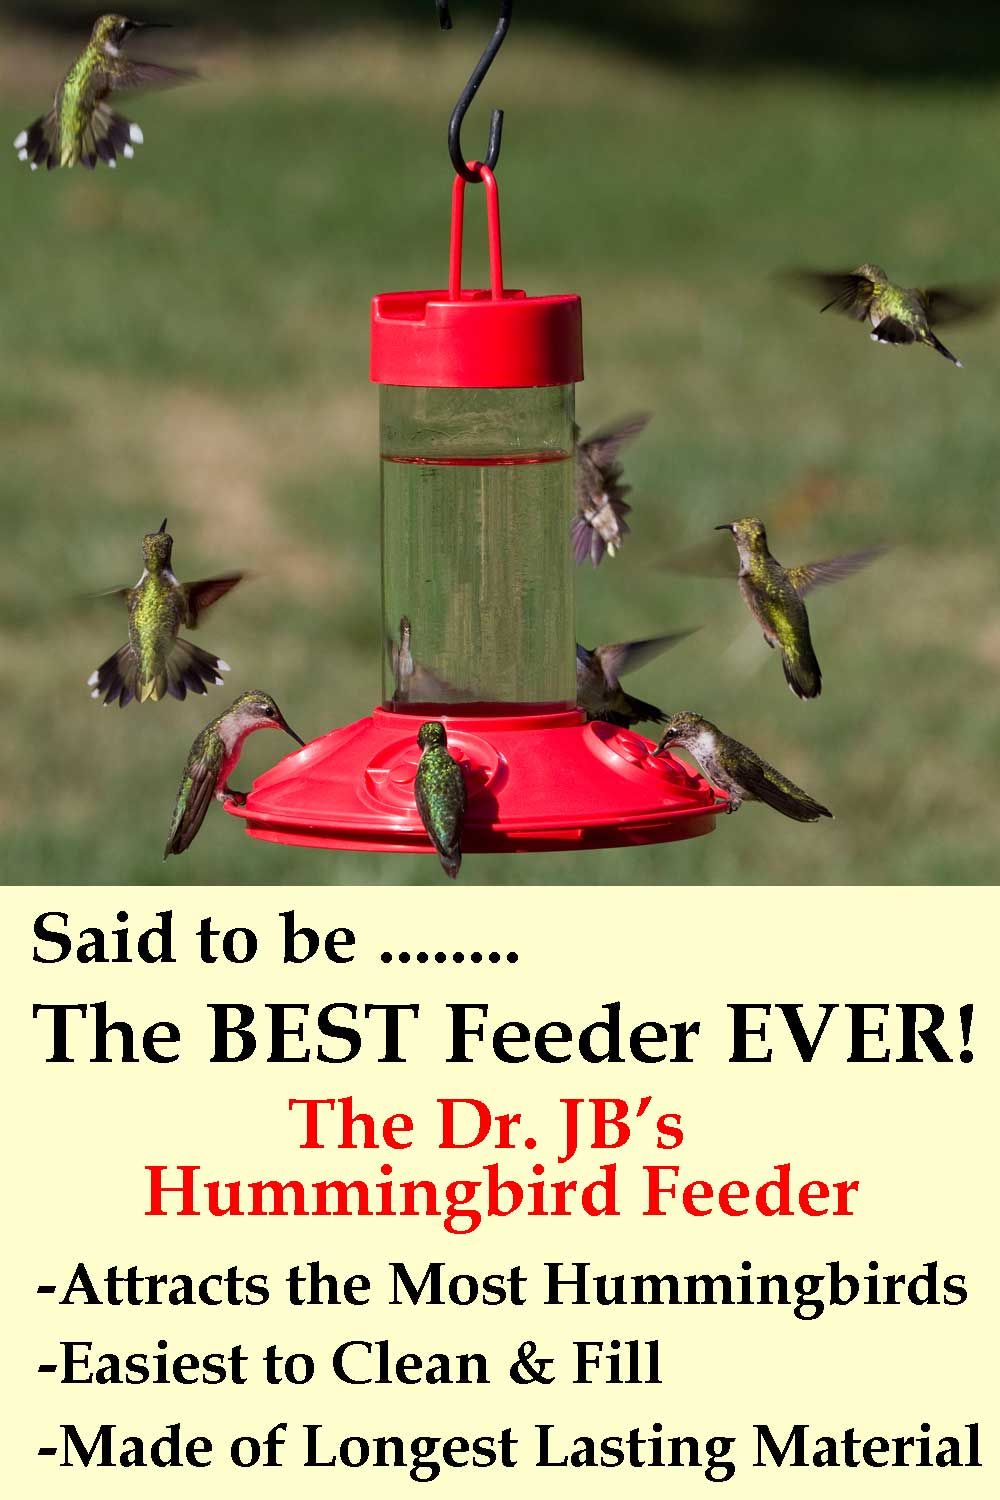 Dr JBs Red Hummingbird Feeder. Said to be the BEST